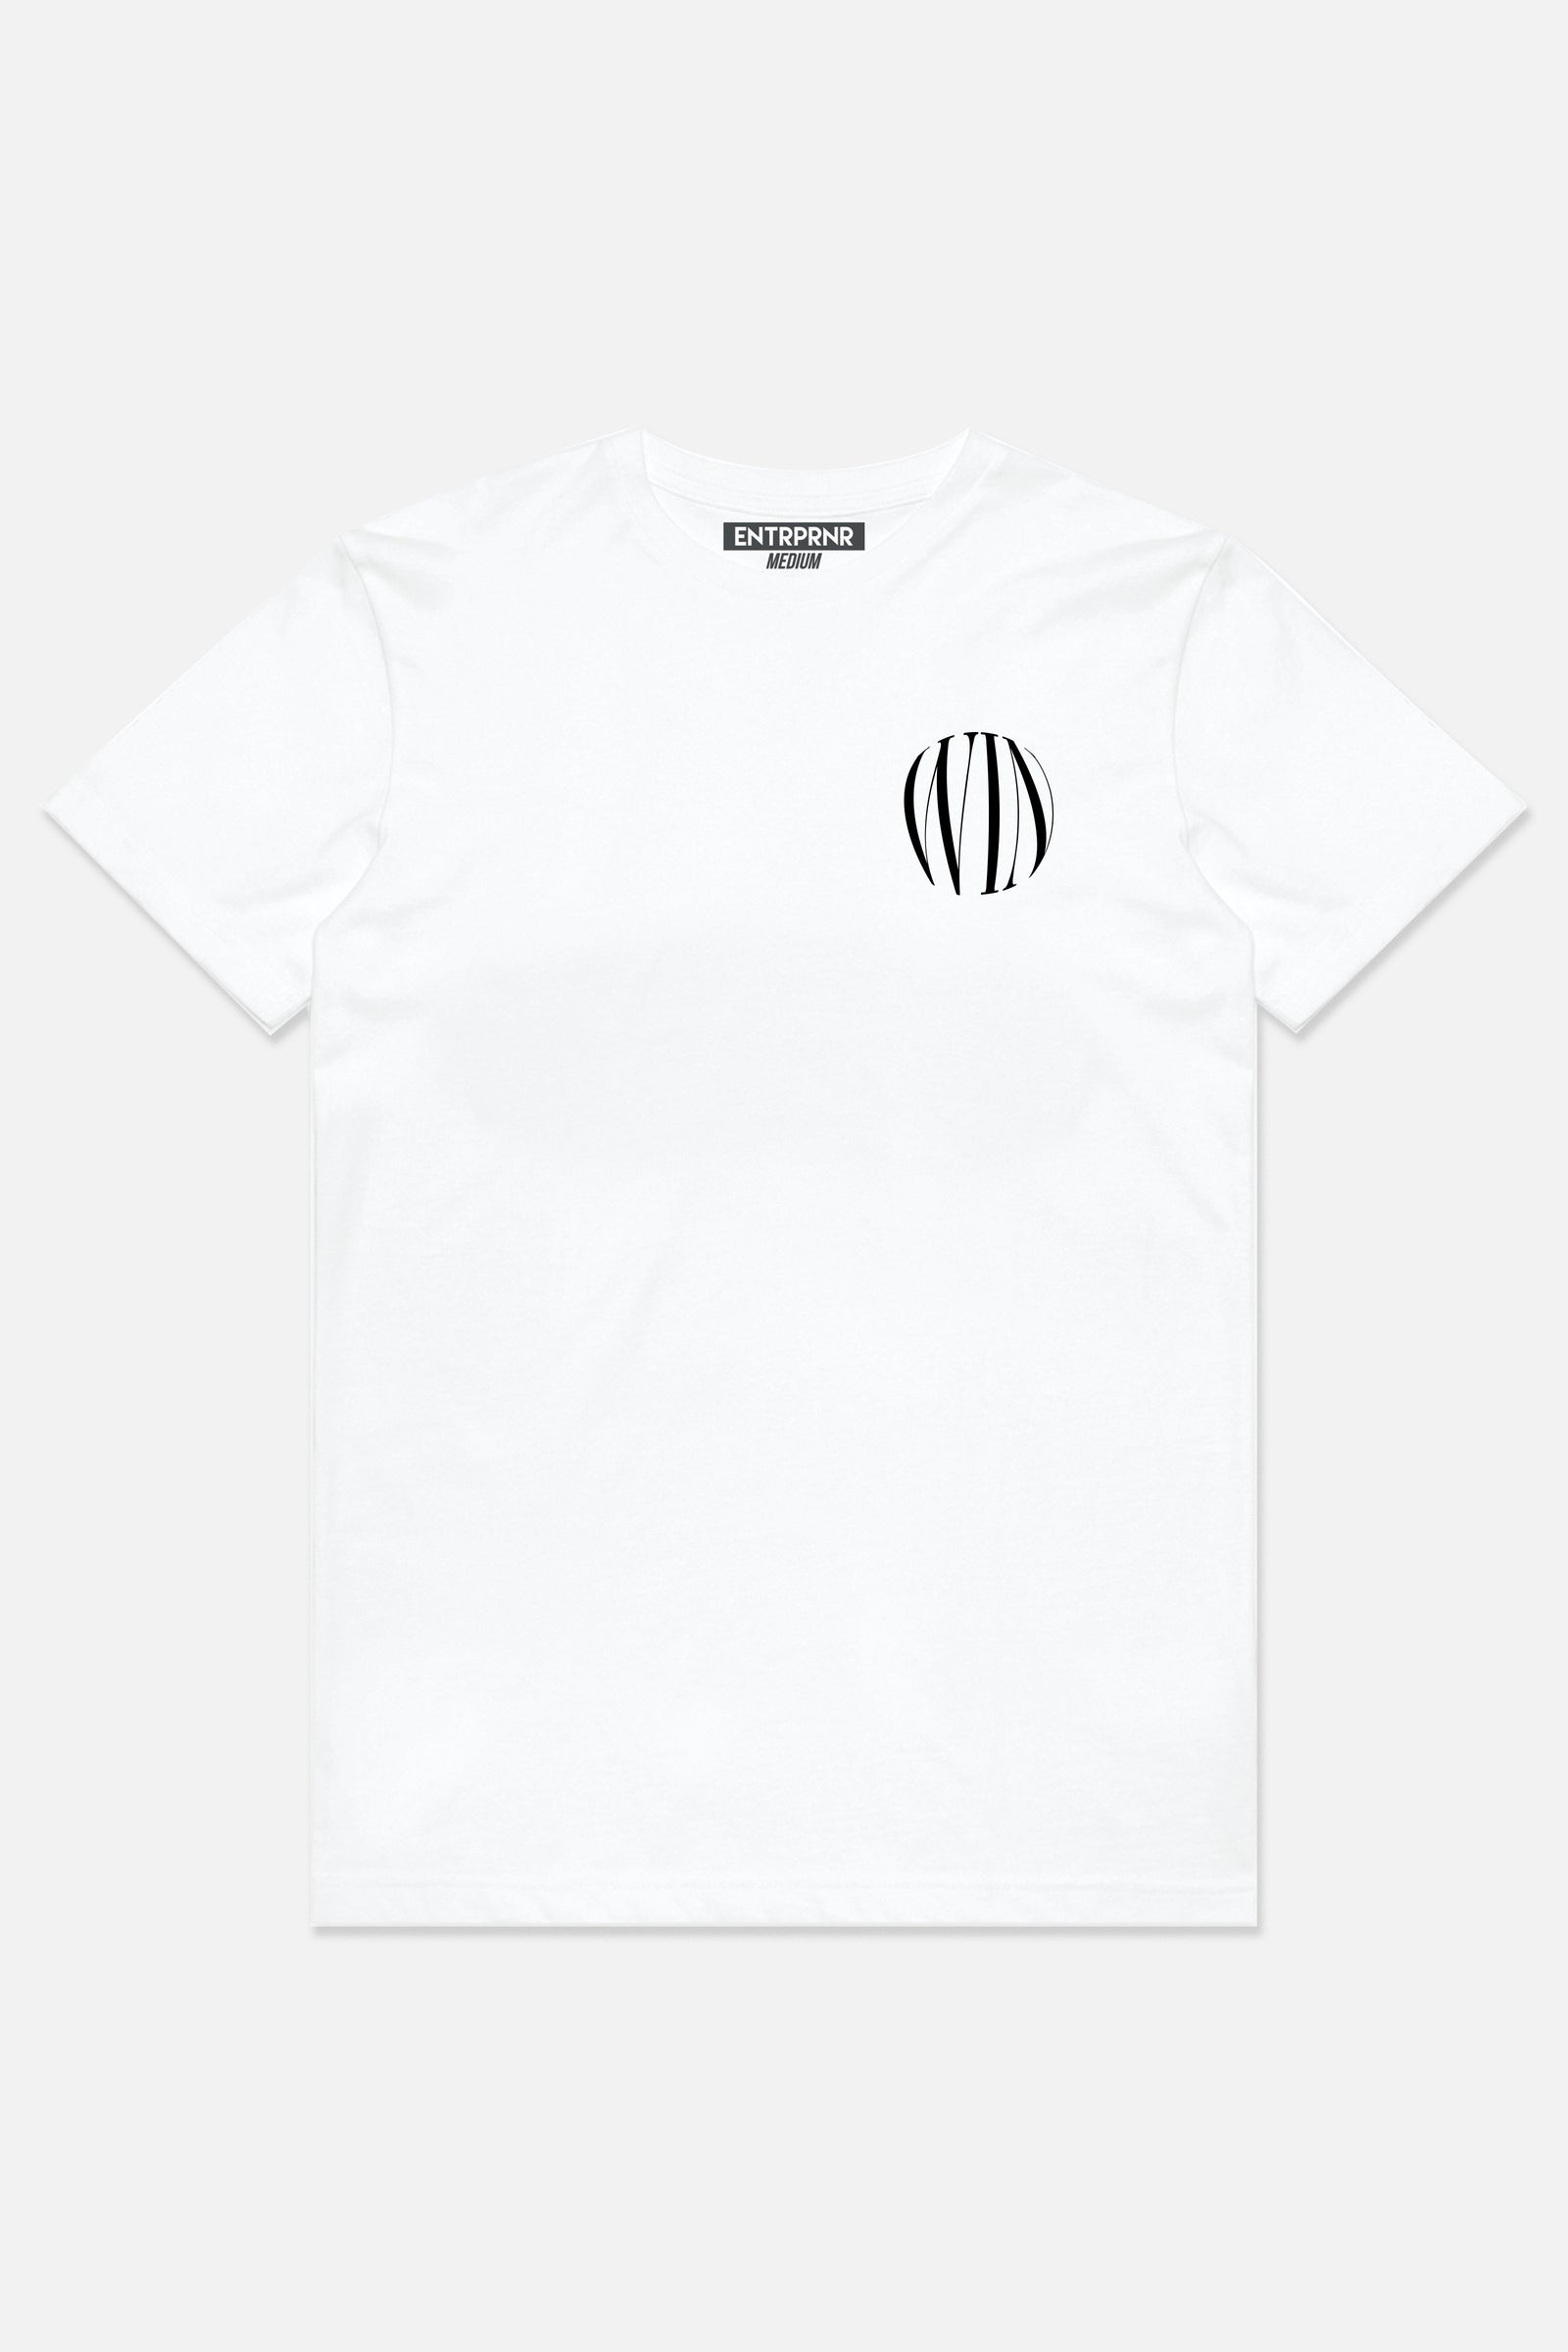 Win Tee - White - ENTRPRNR® | The Entrepreneur's Clothing Brand. | Stagnancy is the Enemy. Action is King.